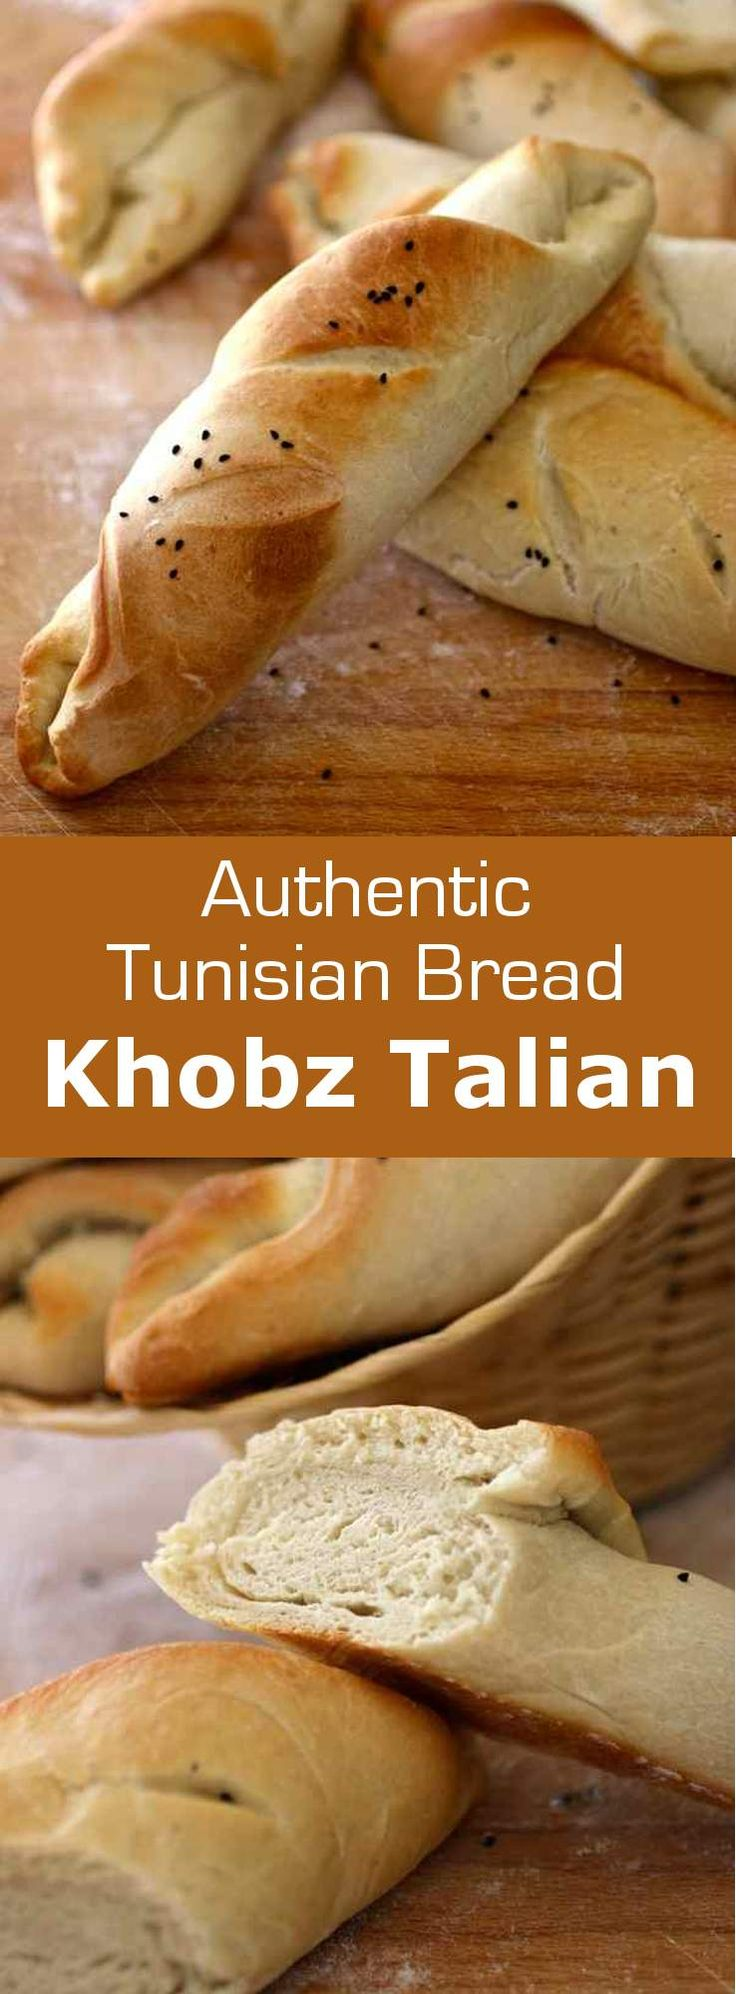 Khobz talian (Italian bread) is a dense and white bread topped with nigella seeds, that was made popular by Italian migrants in Tunisia. #Tunisia…